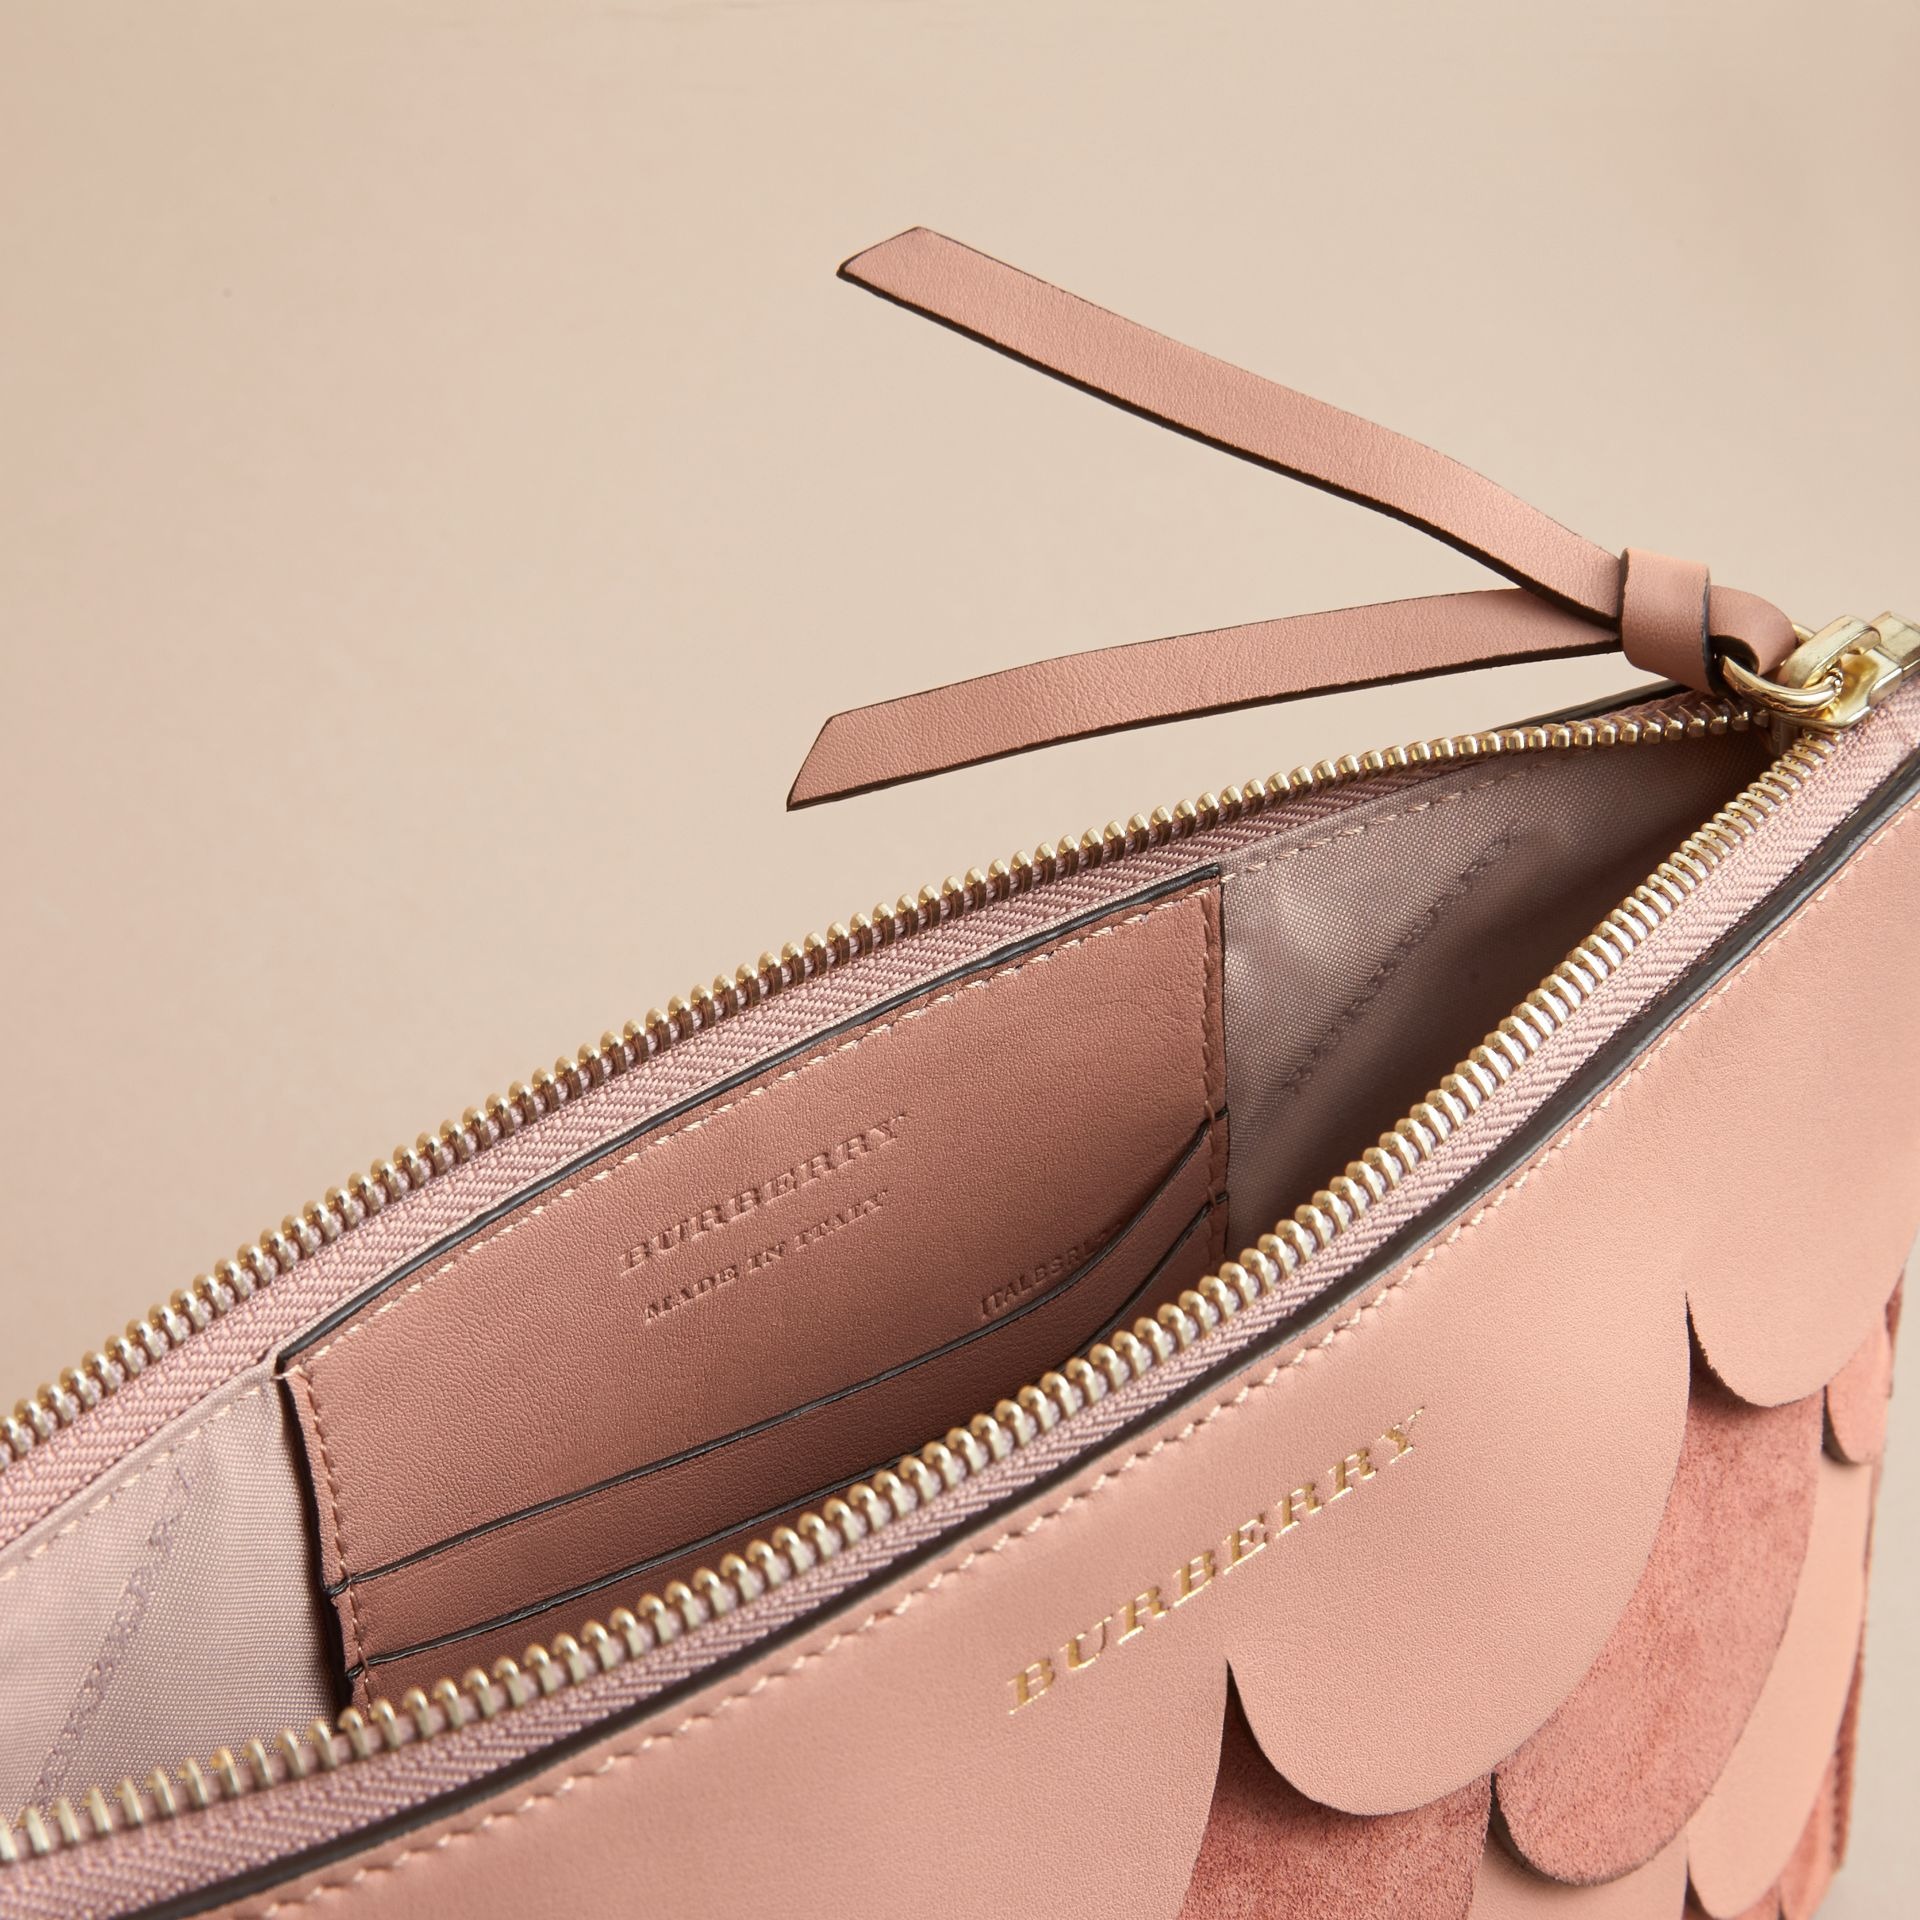 Two-tone Scalloped Leather and Suede Clutch Bag in Ash Rose - Women | Burberry United Kingdom - gallery image 6